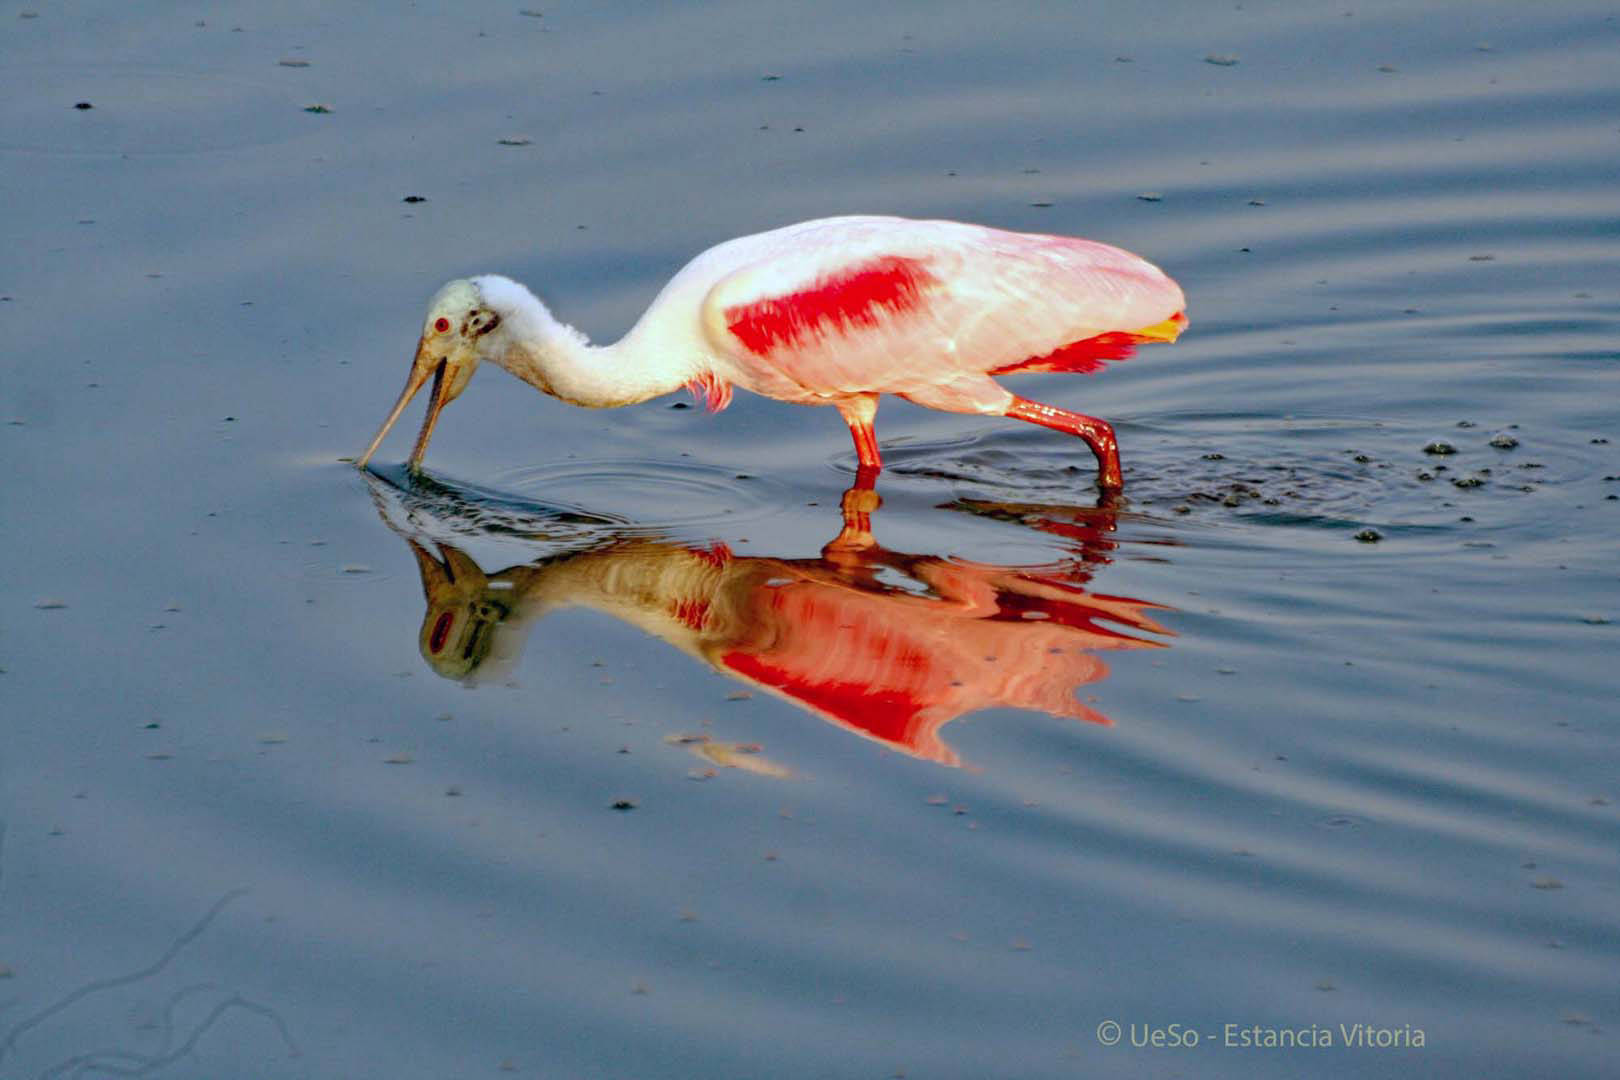 The Roseate Spoonbill looks for fish